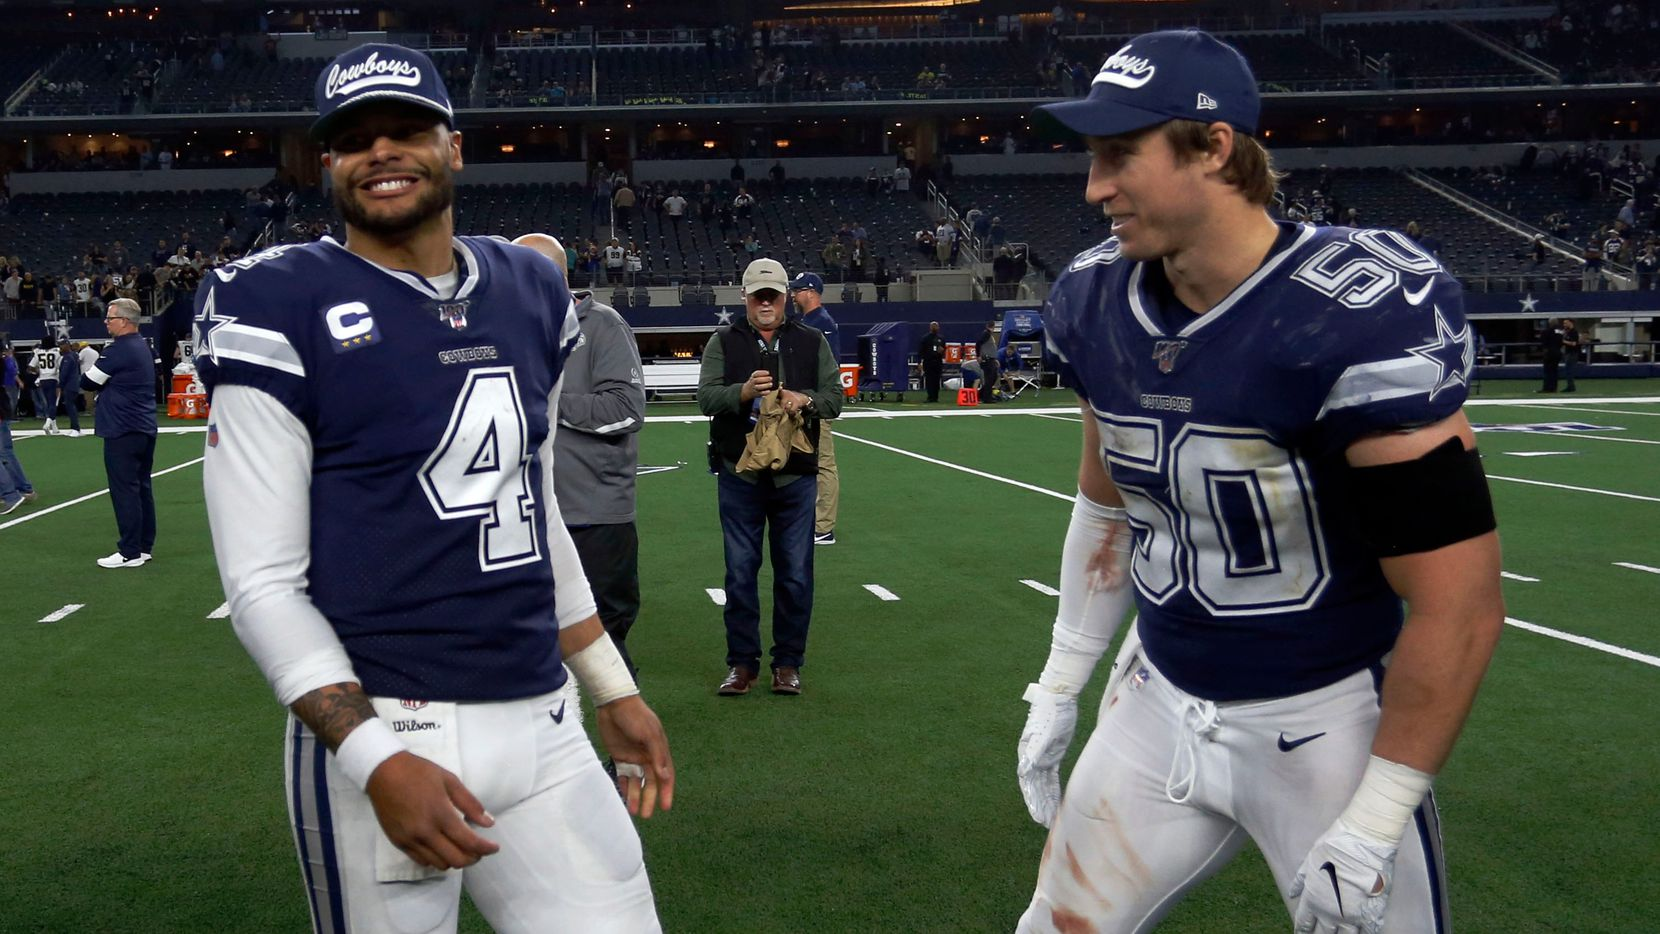 FILE — Dallas Cowboys quarterback Dak Prescott (4) and Dallas Cowboys outside linebacker Sean Lee (50) are all smiles after television interviews at the end of the Los Angeles Rams Vs. Dallas Cowboys NFL football game on Sunday, December 15, 2019. Dallas won 44-21.